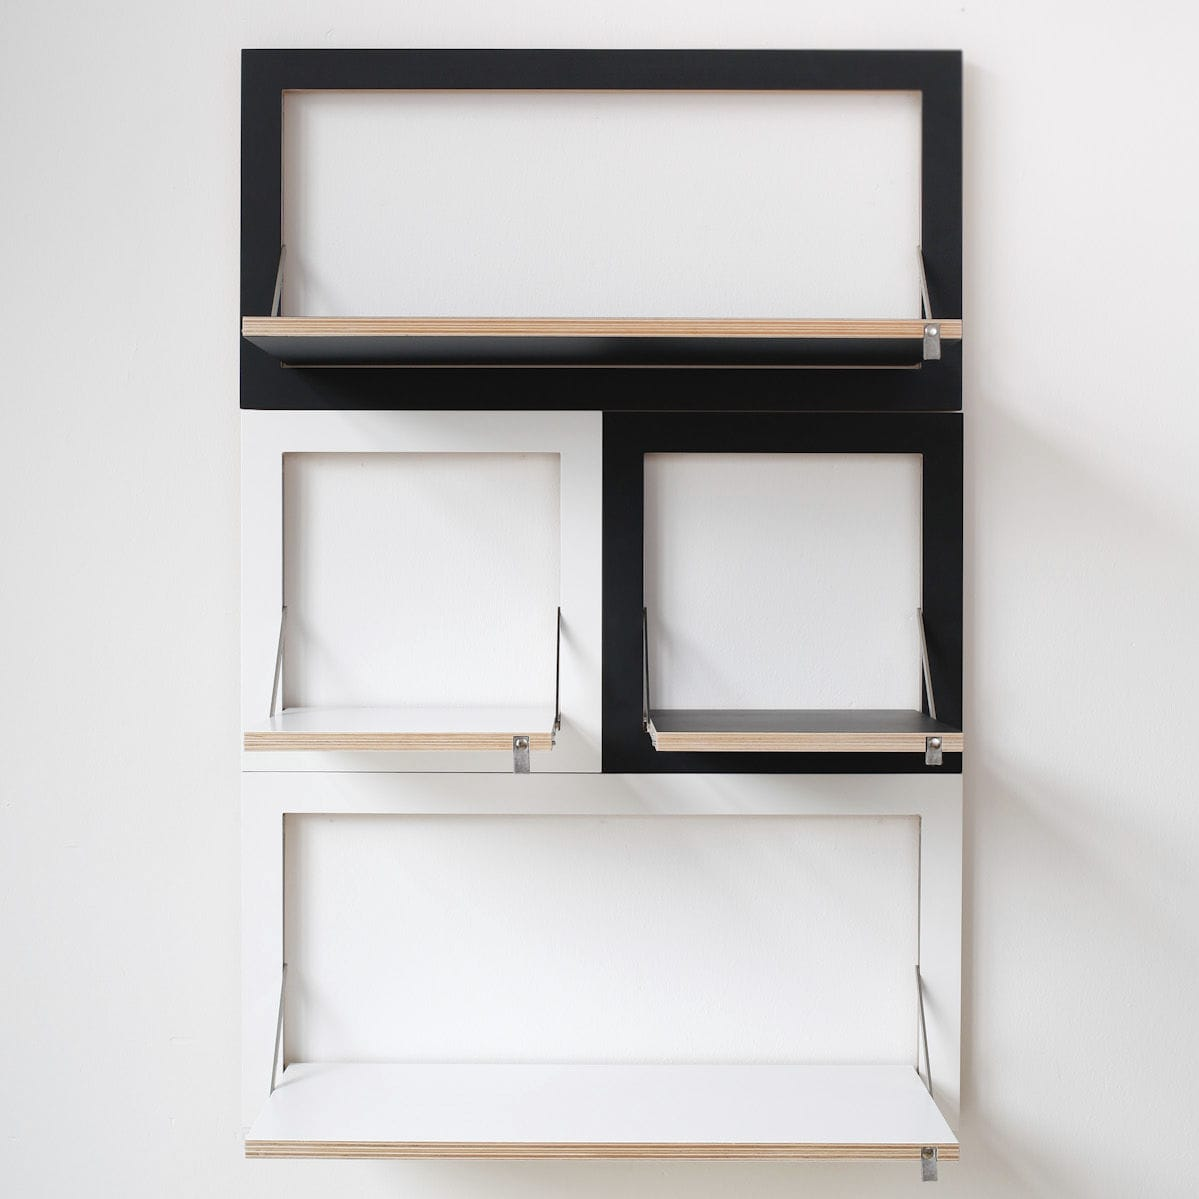 Wall-mounted shelving system / contemporary / wooden / home FLÄPPS  AMBIVALENZ